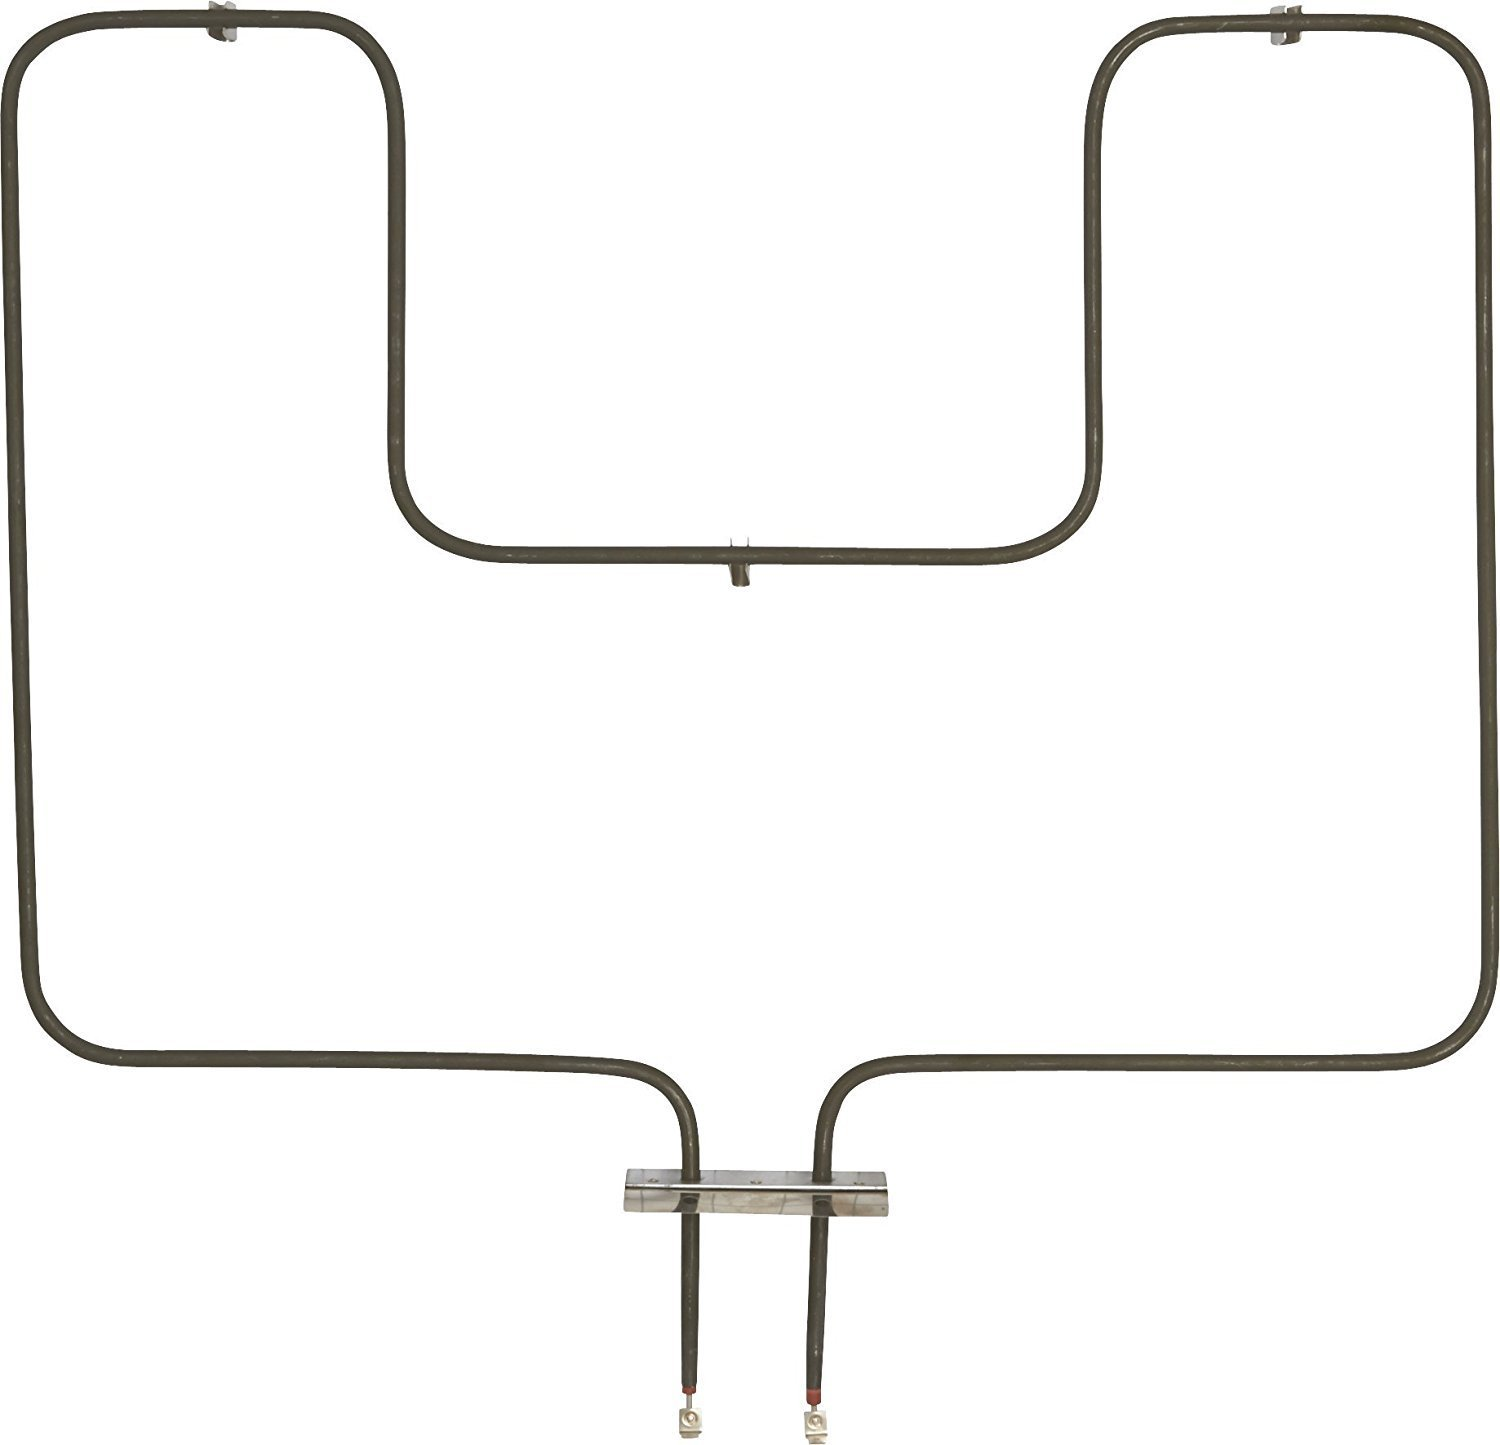 Compatible Oven Bake Heating Element for Frigidaire PLES389CCB, Part Number PS3633414, Kenmore / Sears 79075503206, Frigidaire FEF455WFBC Range